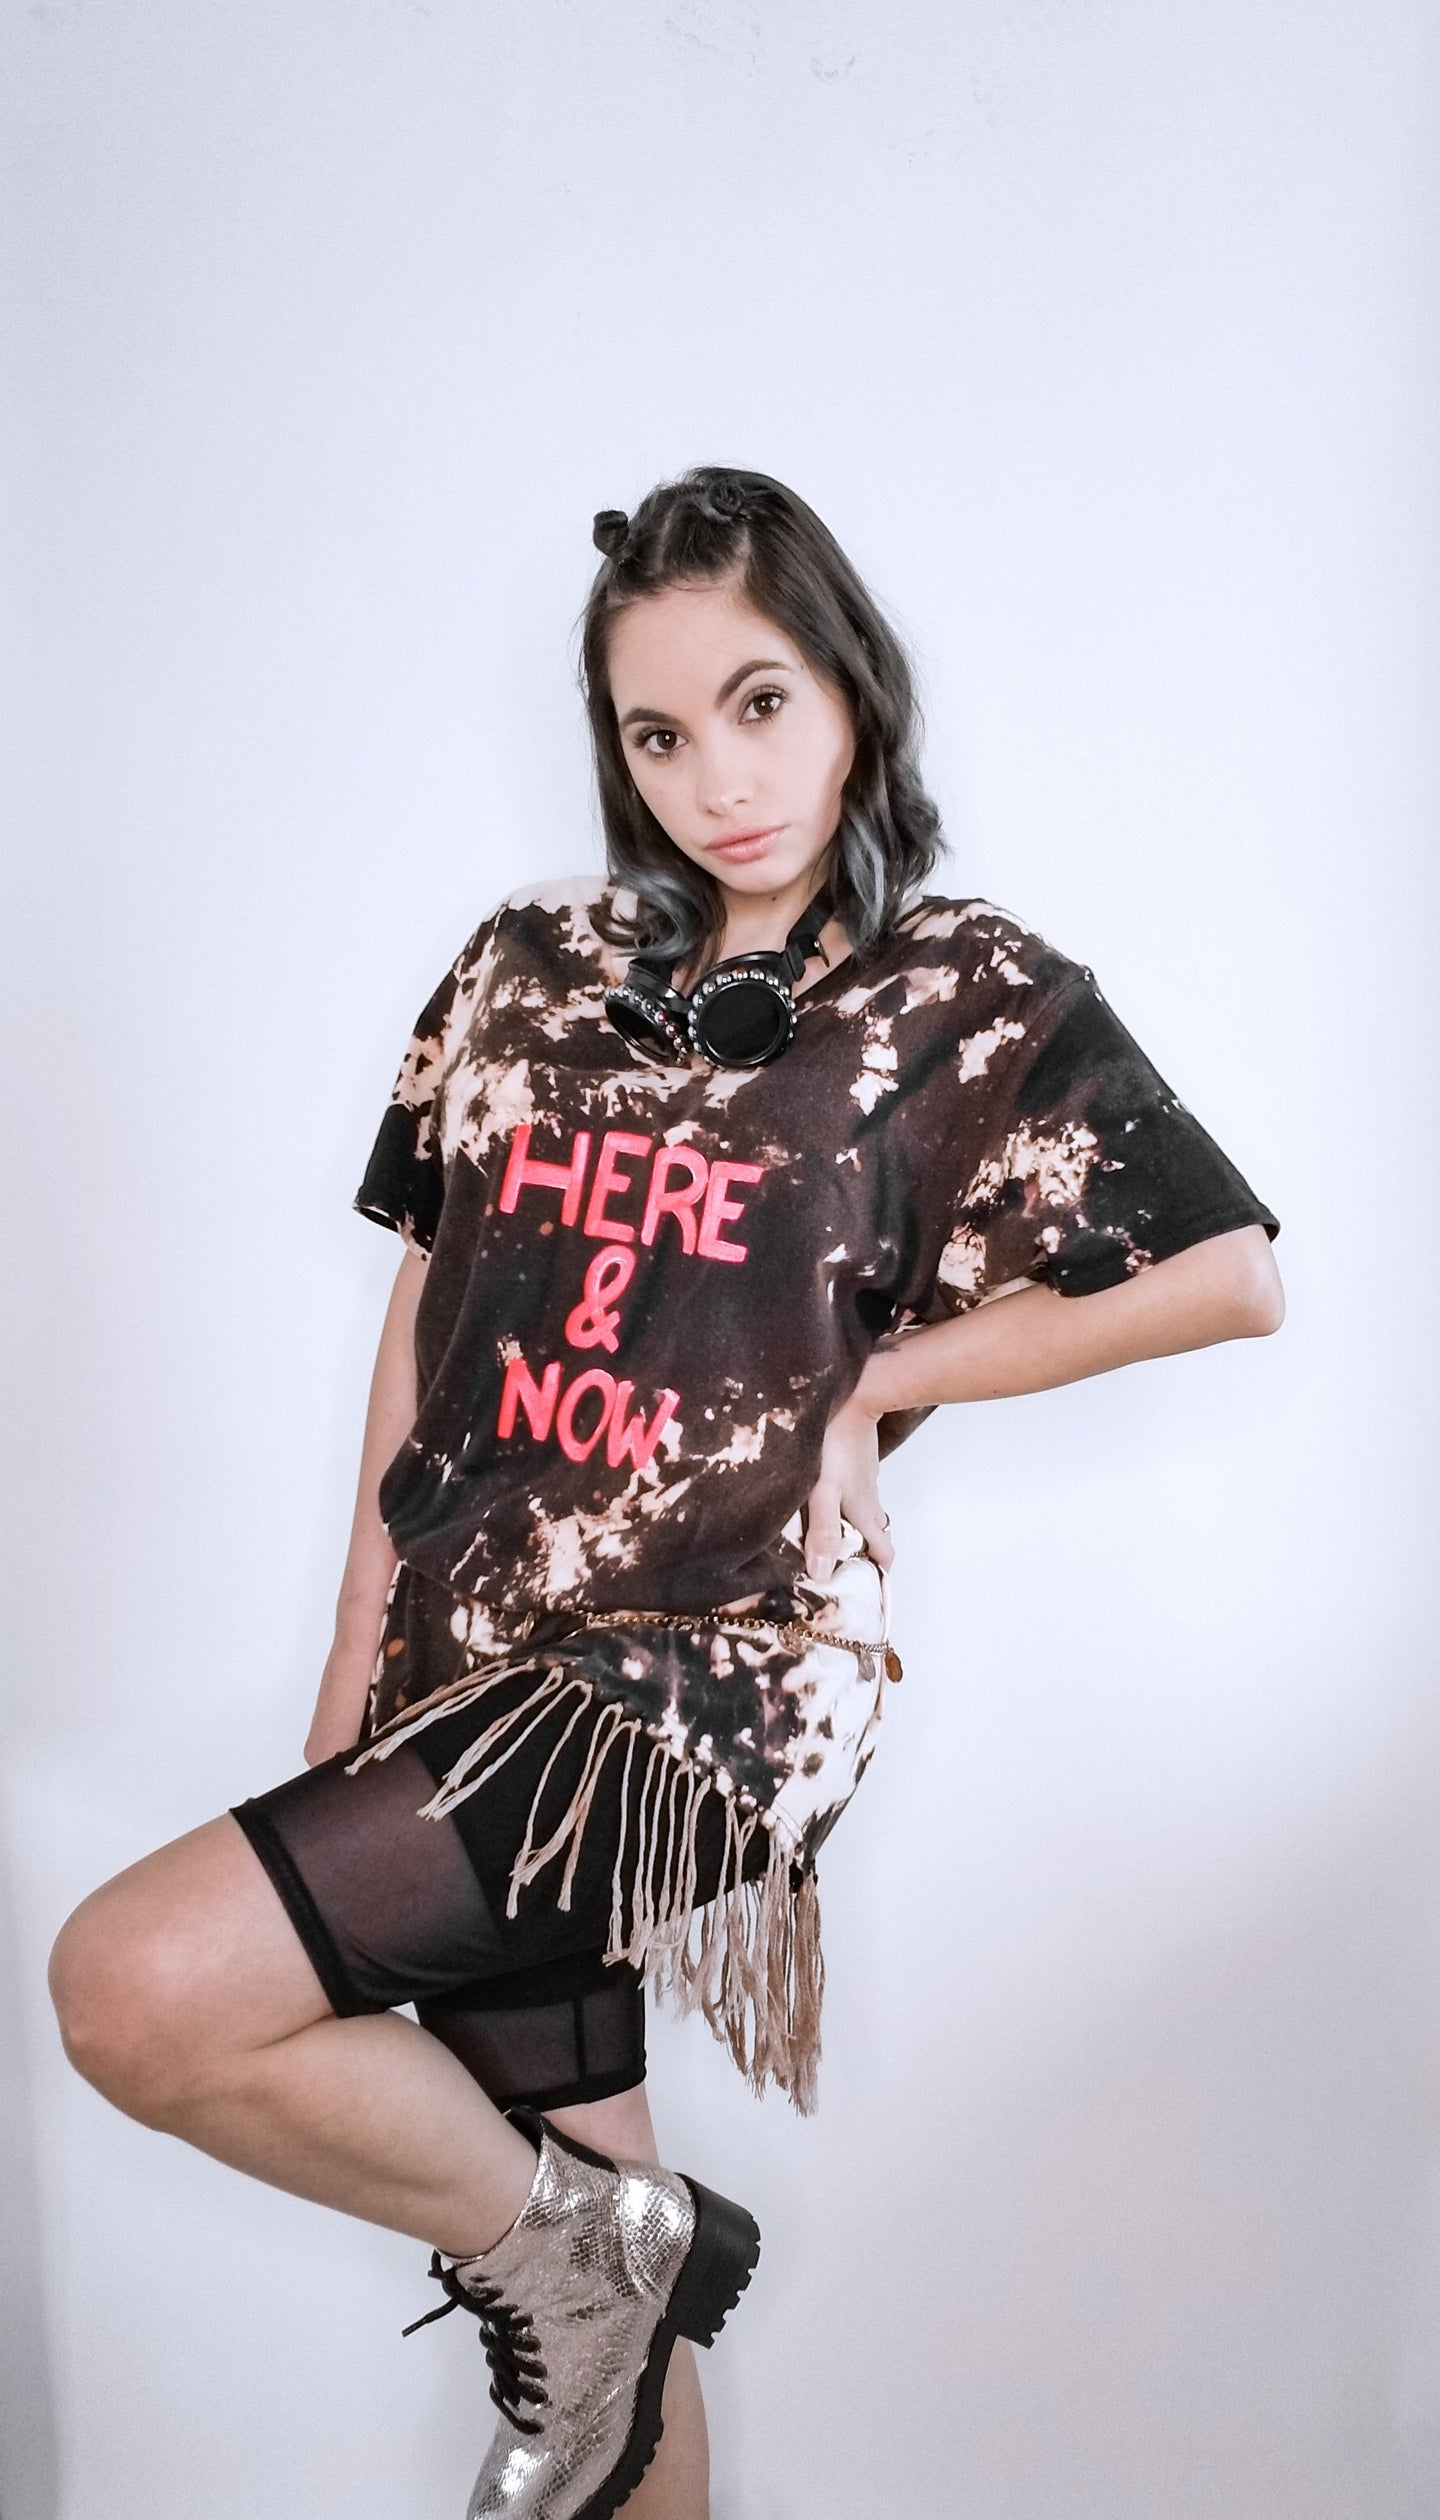 Here & Now Tshirt